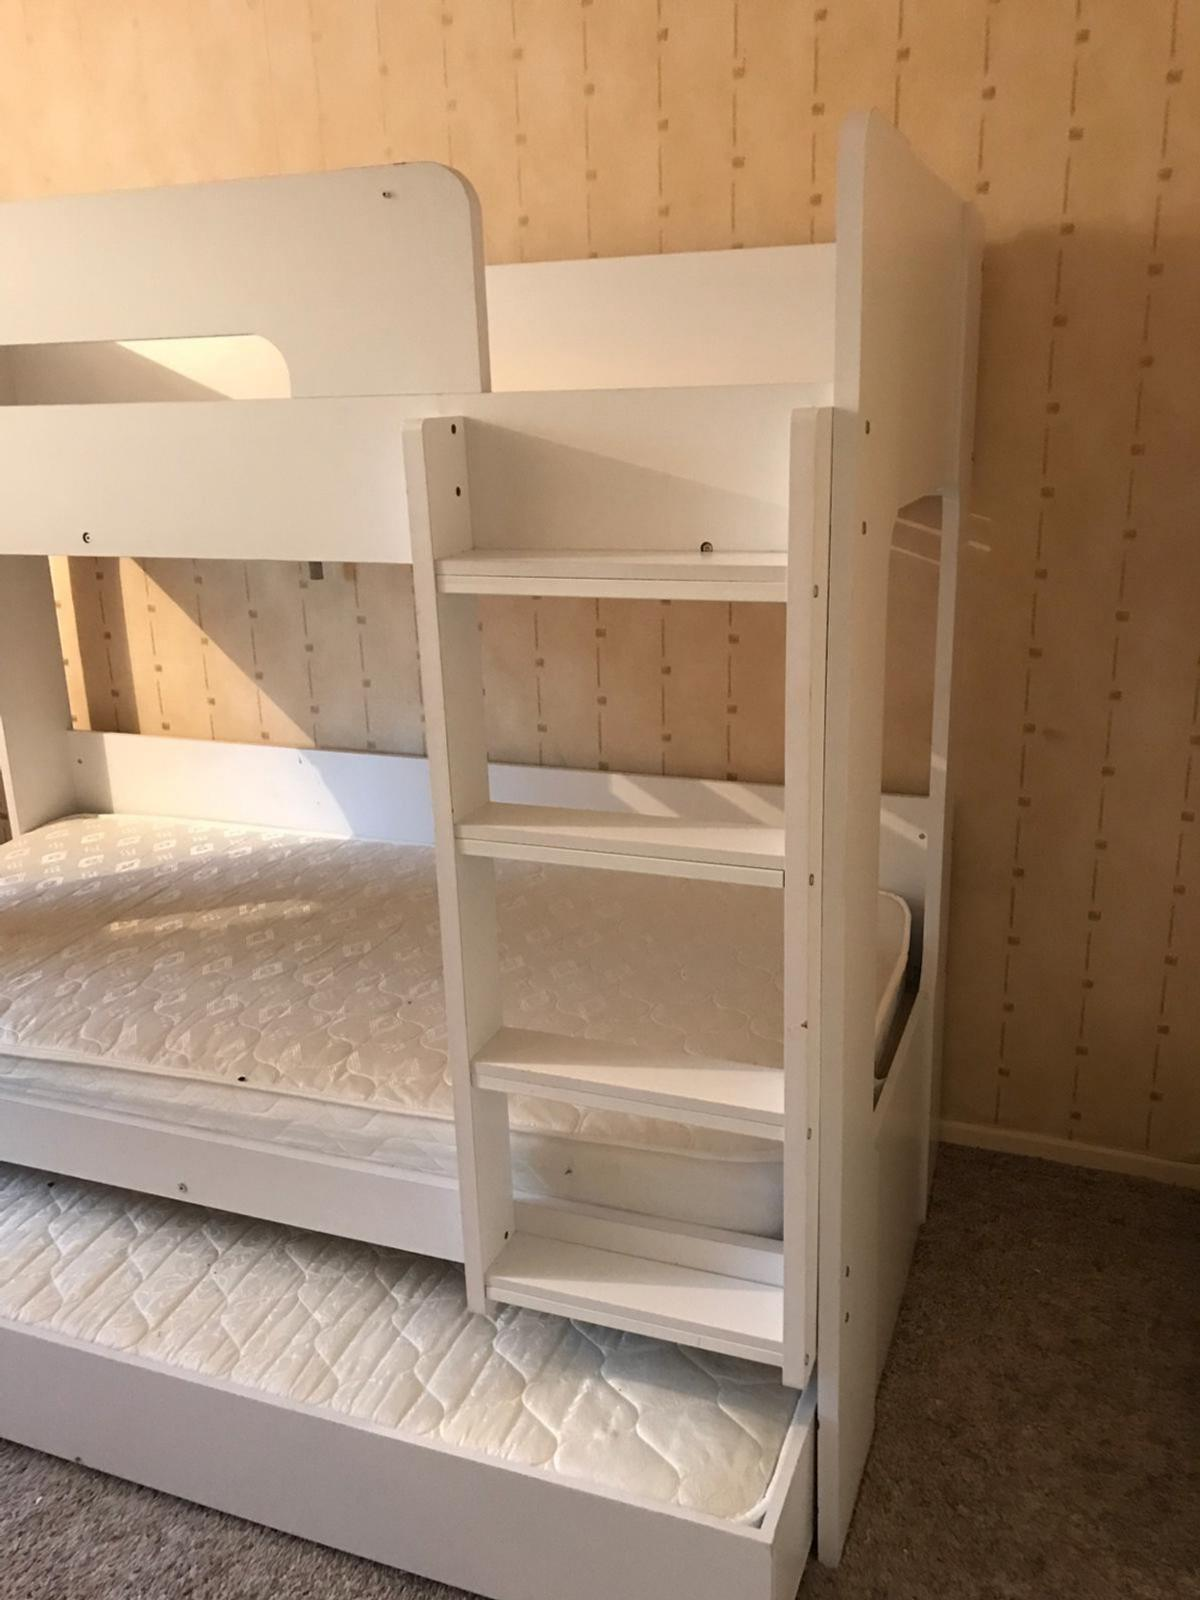 White Bunk Beds With Pull Out Trundle Bed In Bd13 Bradford Fur 135 00 Zum Verkauf Shpock At